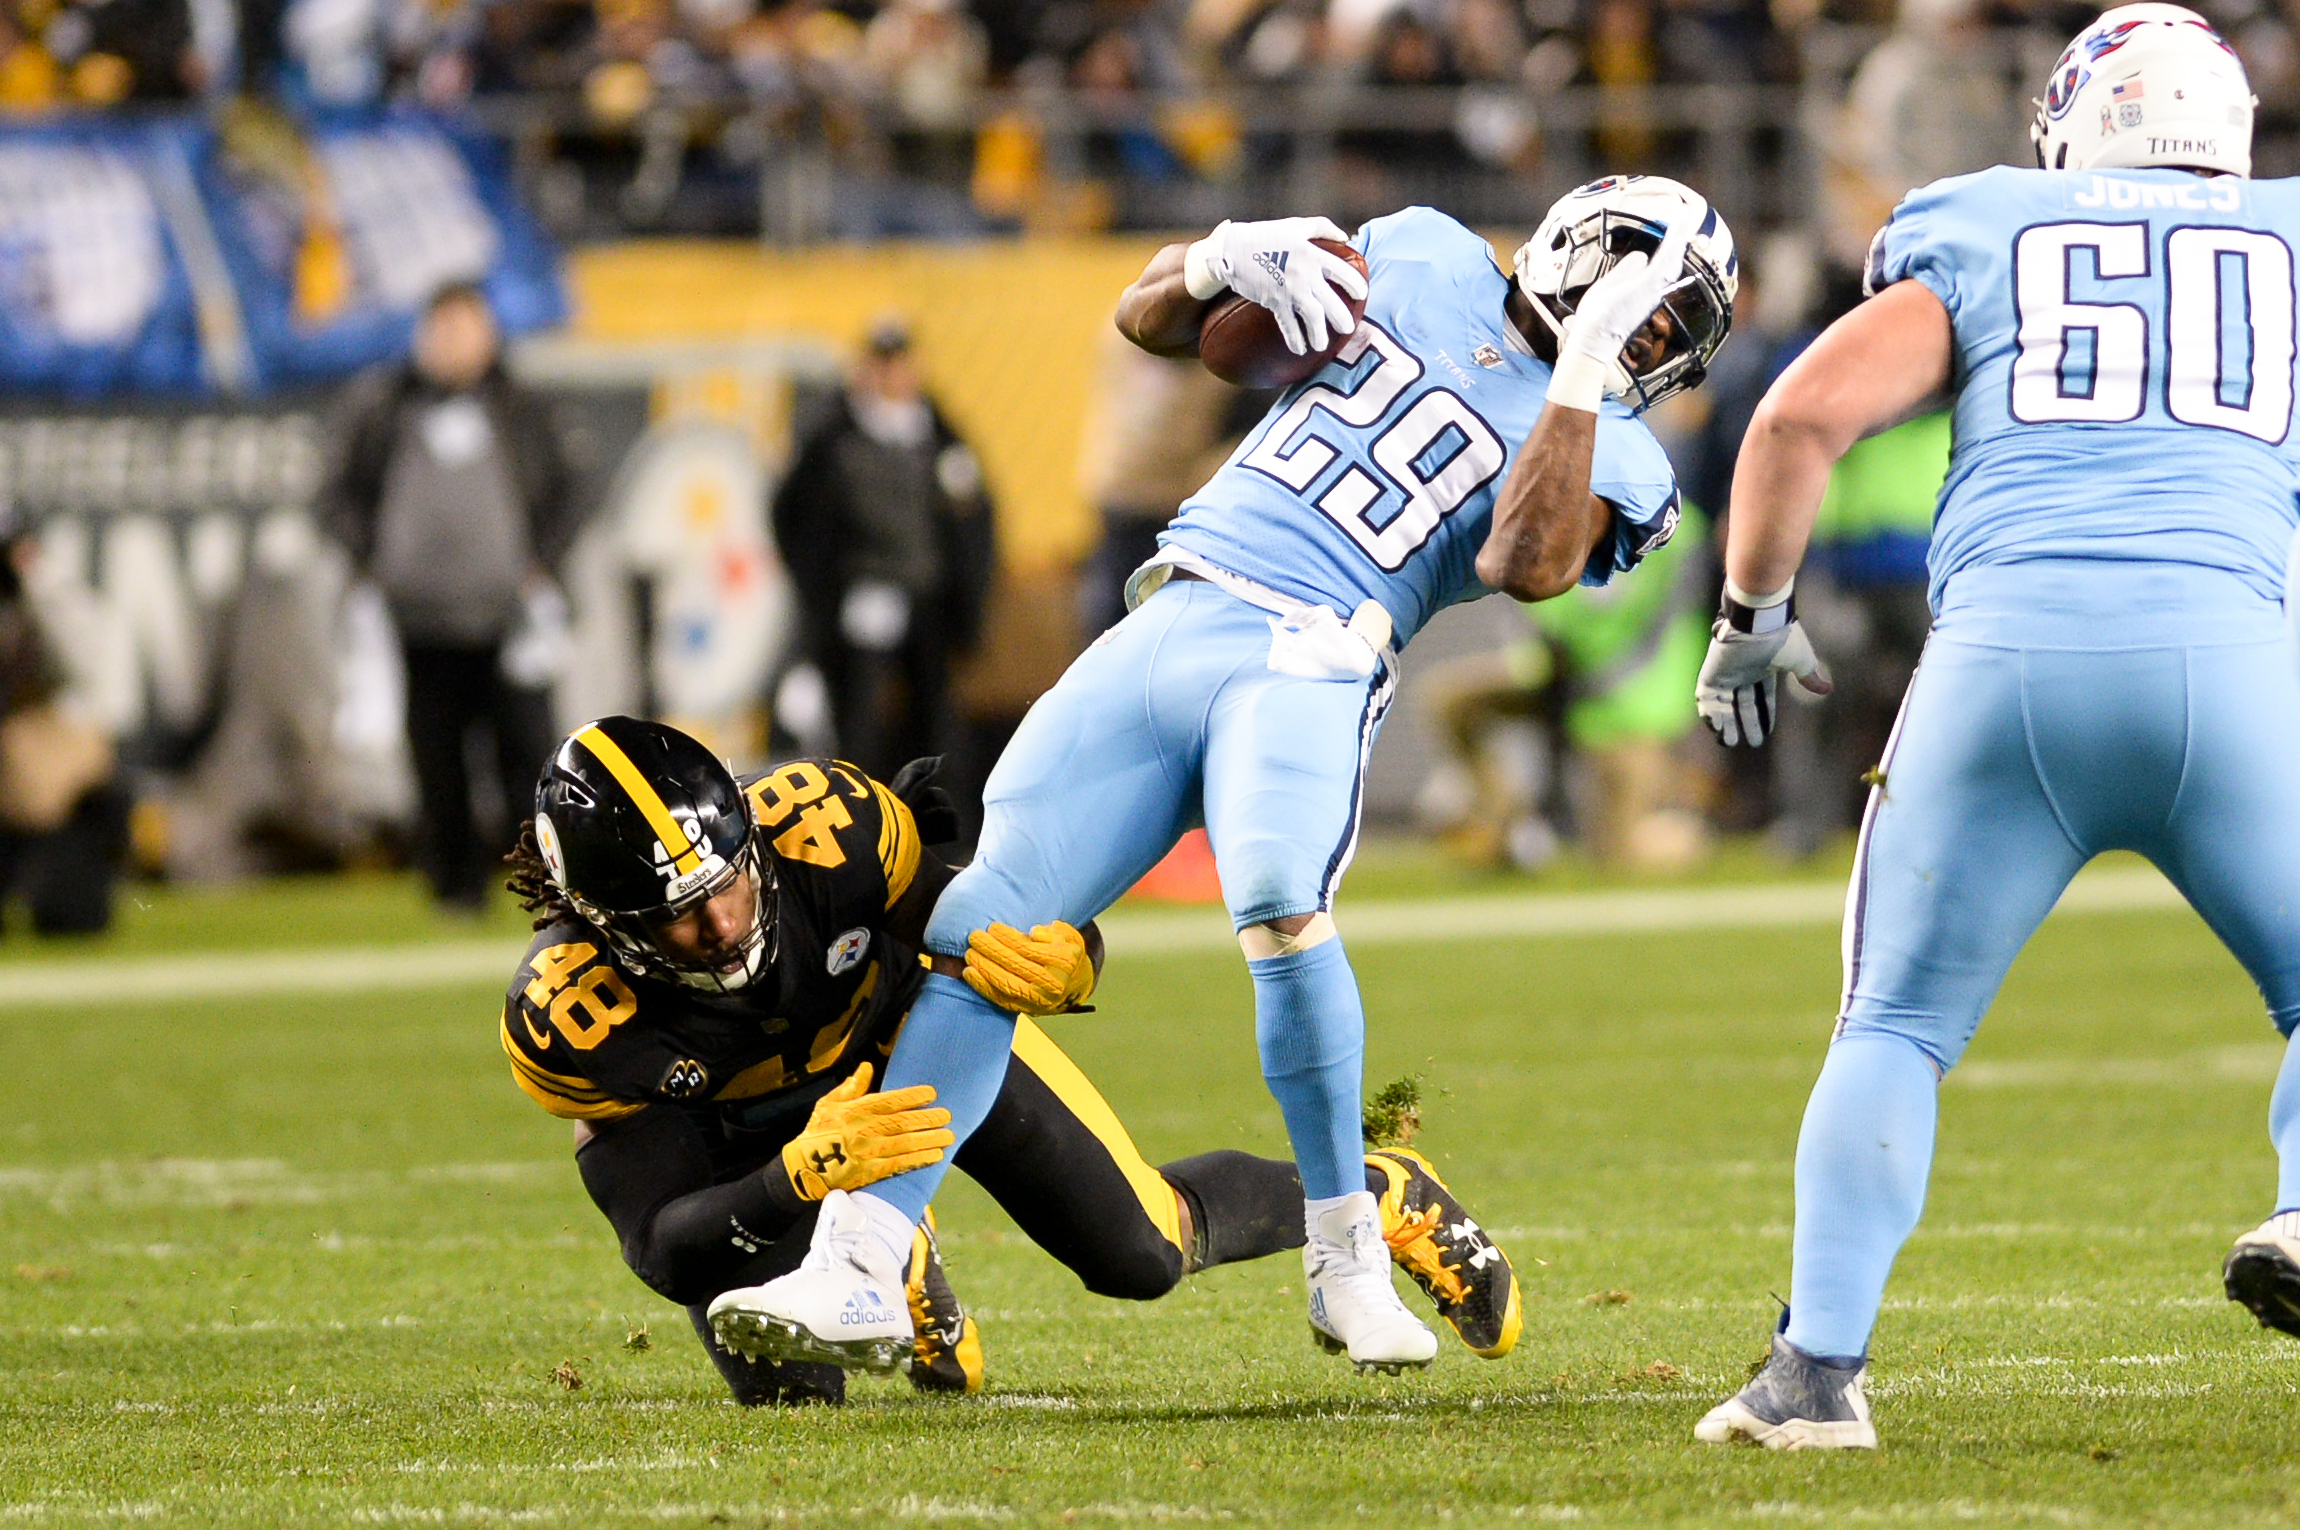 Offense shines as Steelers dominate Tennessee in 40-17 win